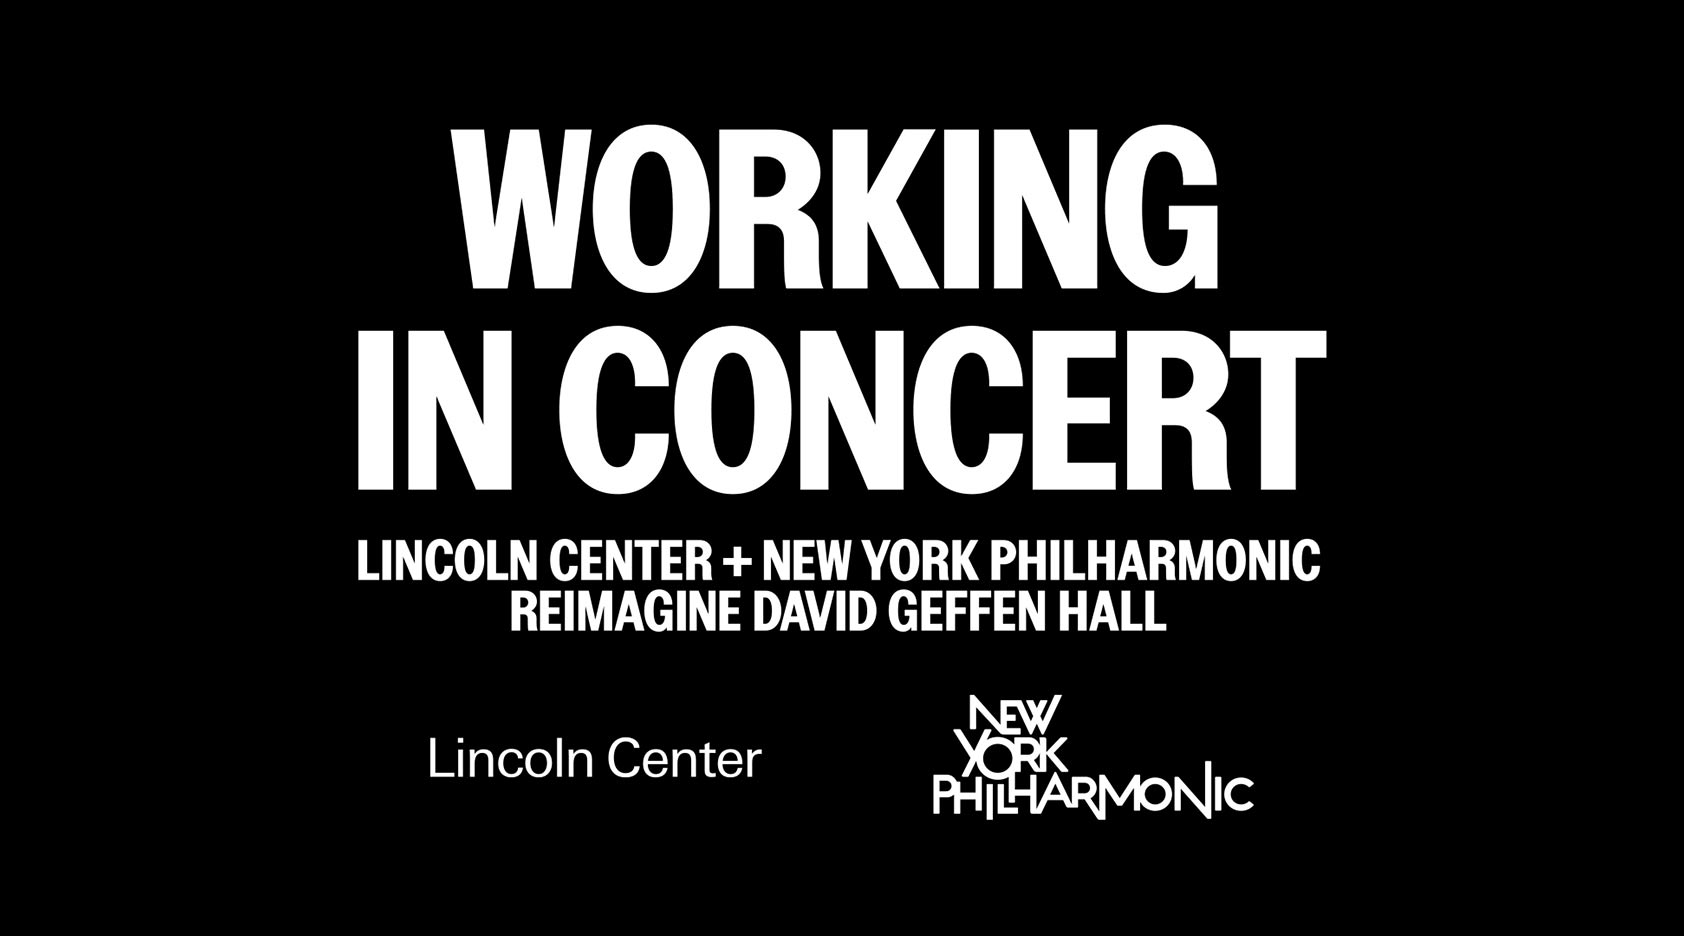 Graphic for Working in Concert, the Lincoln Center / New York Philharmonic project to reimagine David Geffen Hall